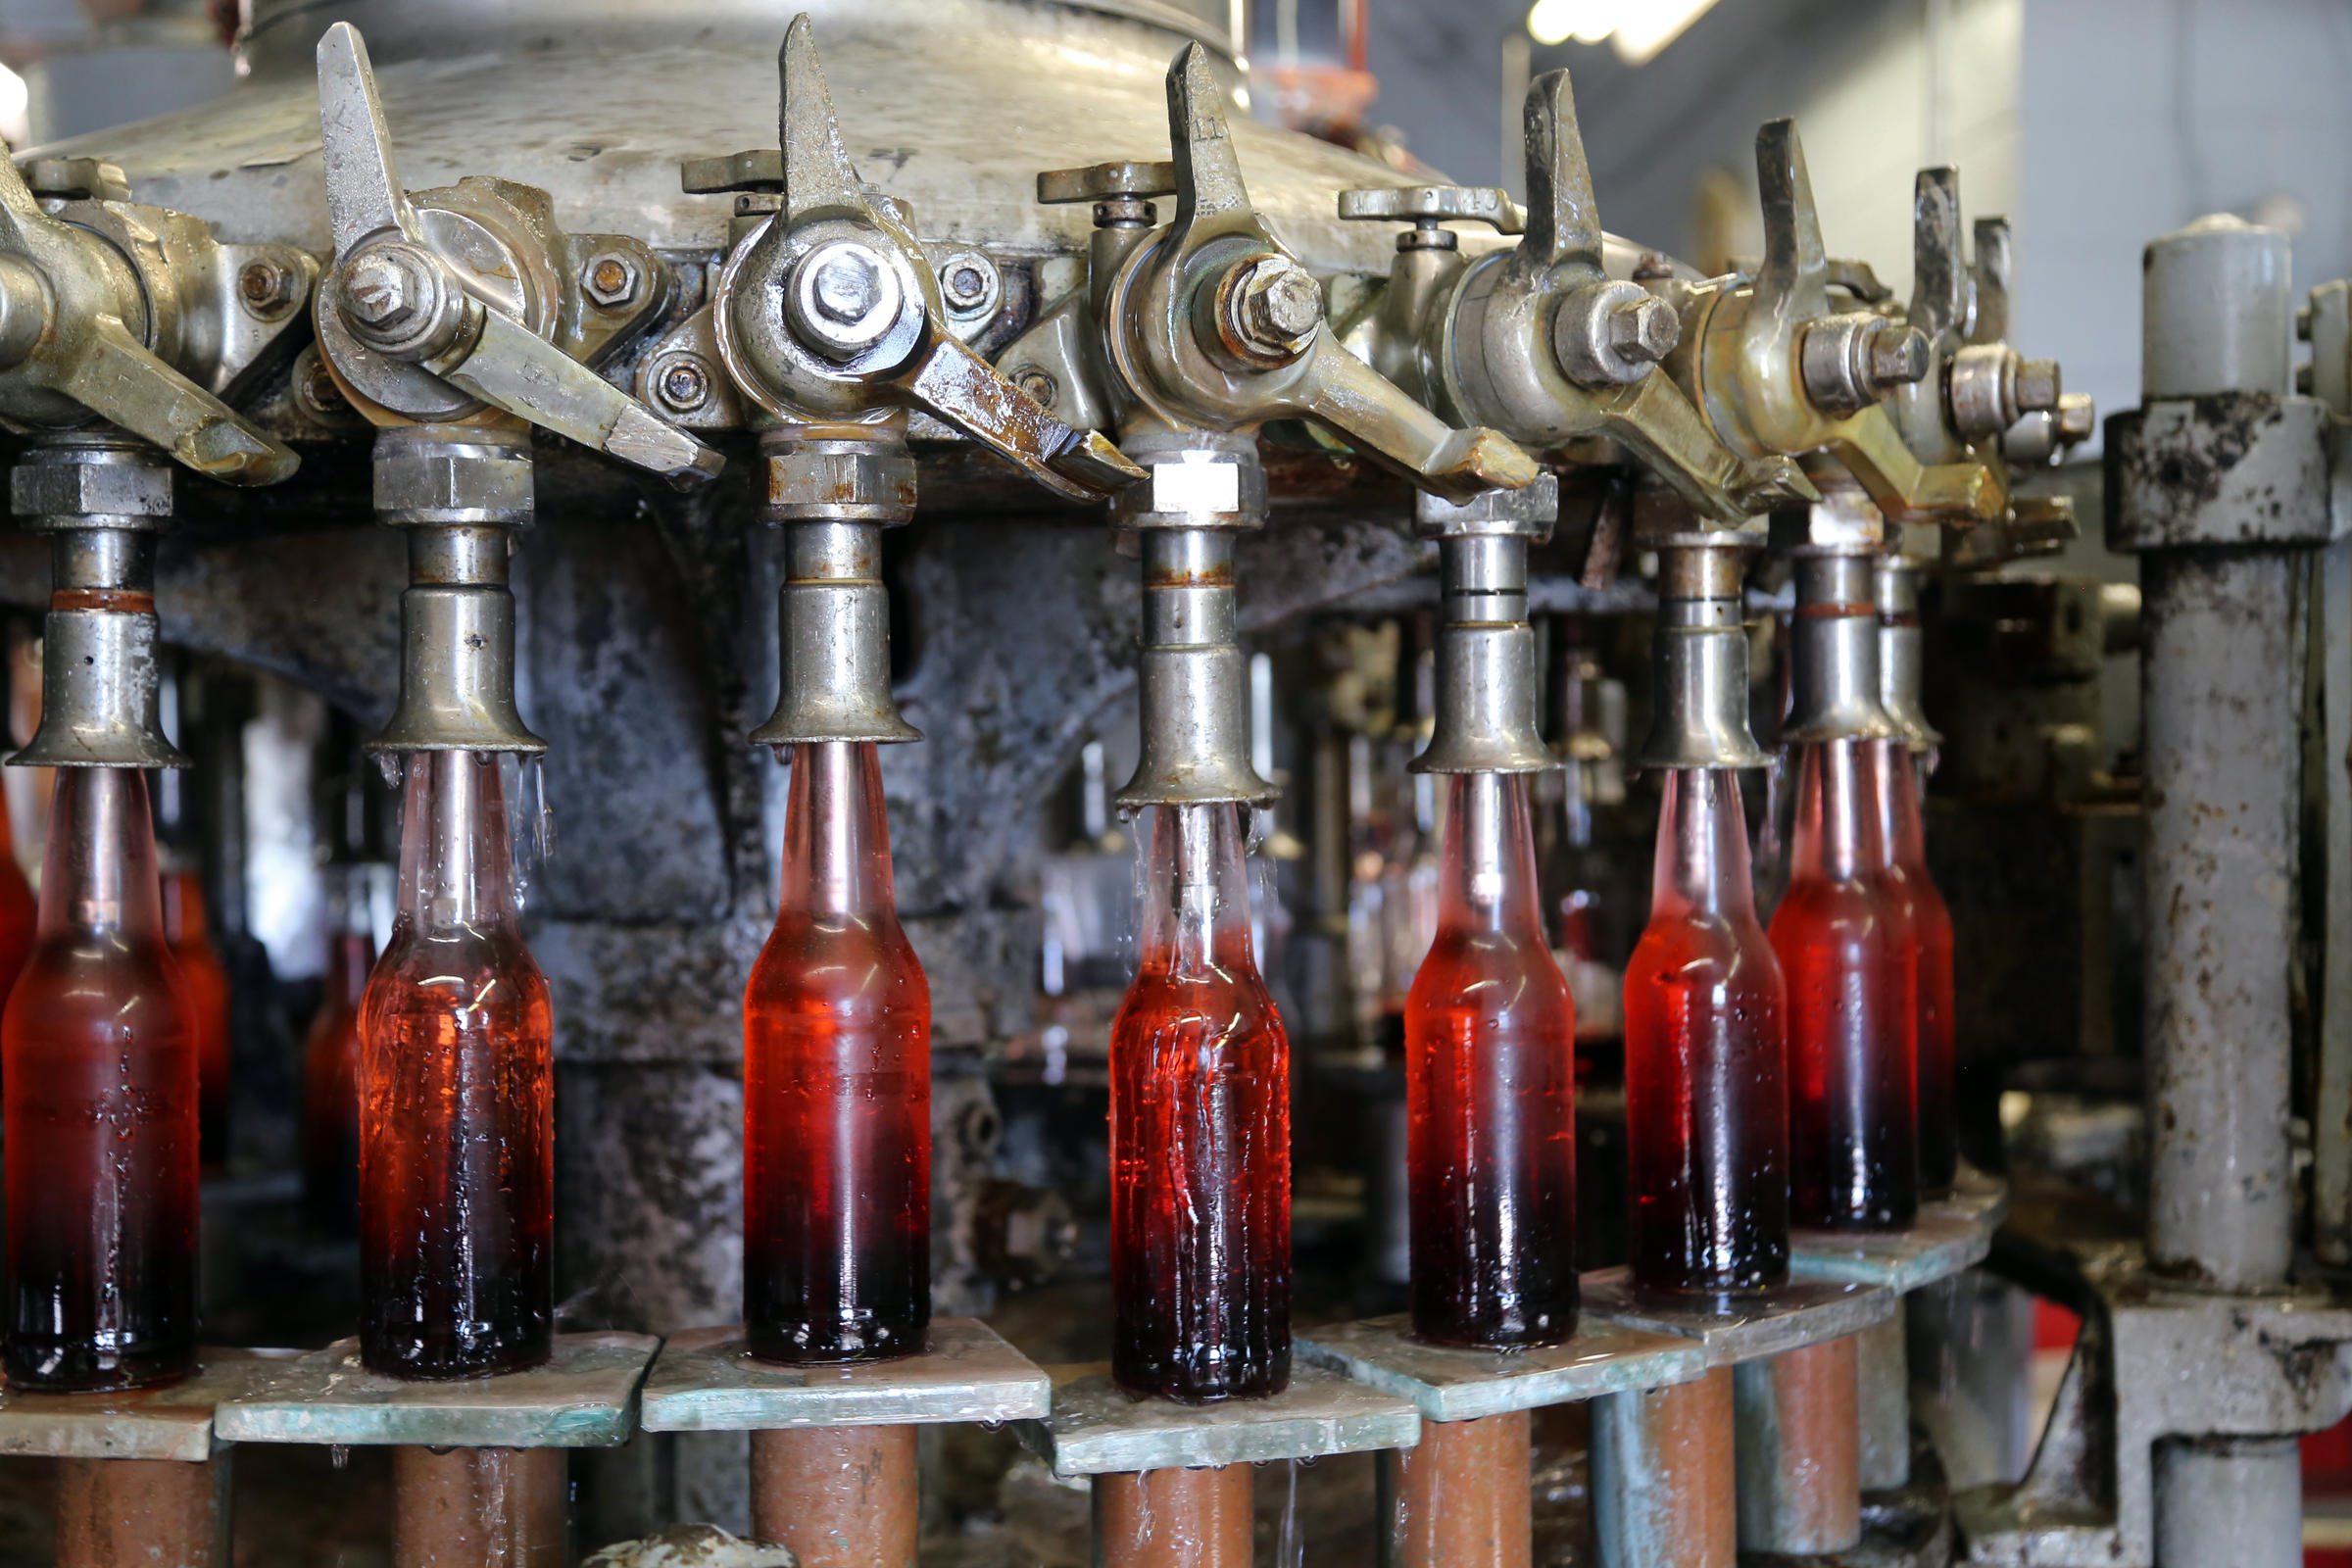 bottling plant Find the perfect bottling plant stock photos and editorial news pictures from getty images download premium images you can't get anywhere else.